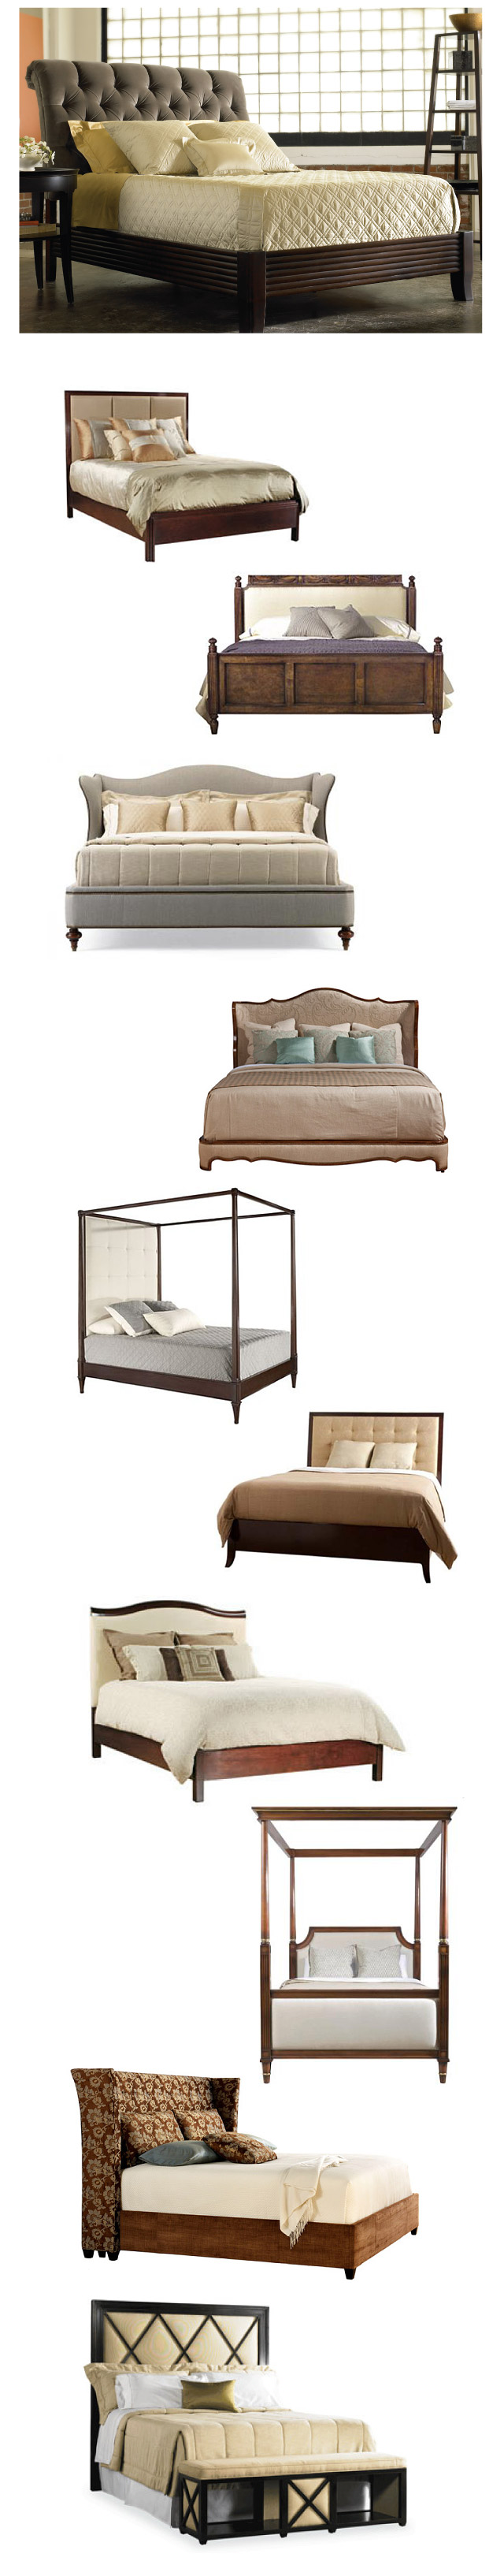 Our Favorite Upholstered Beds!